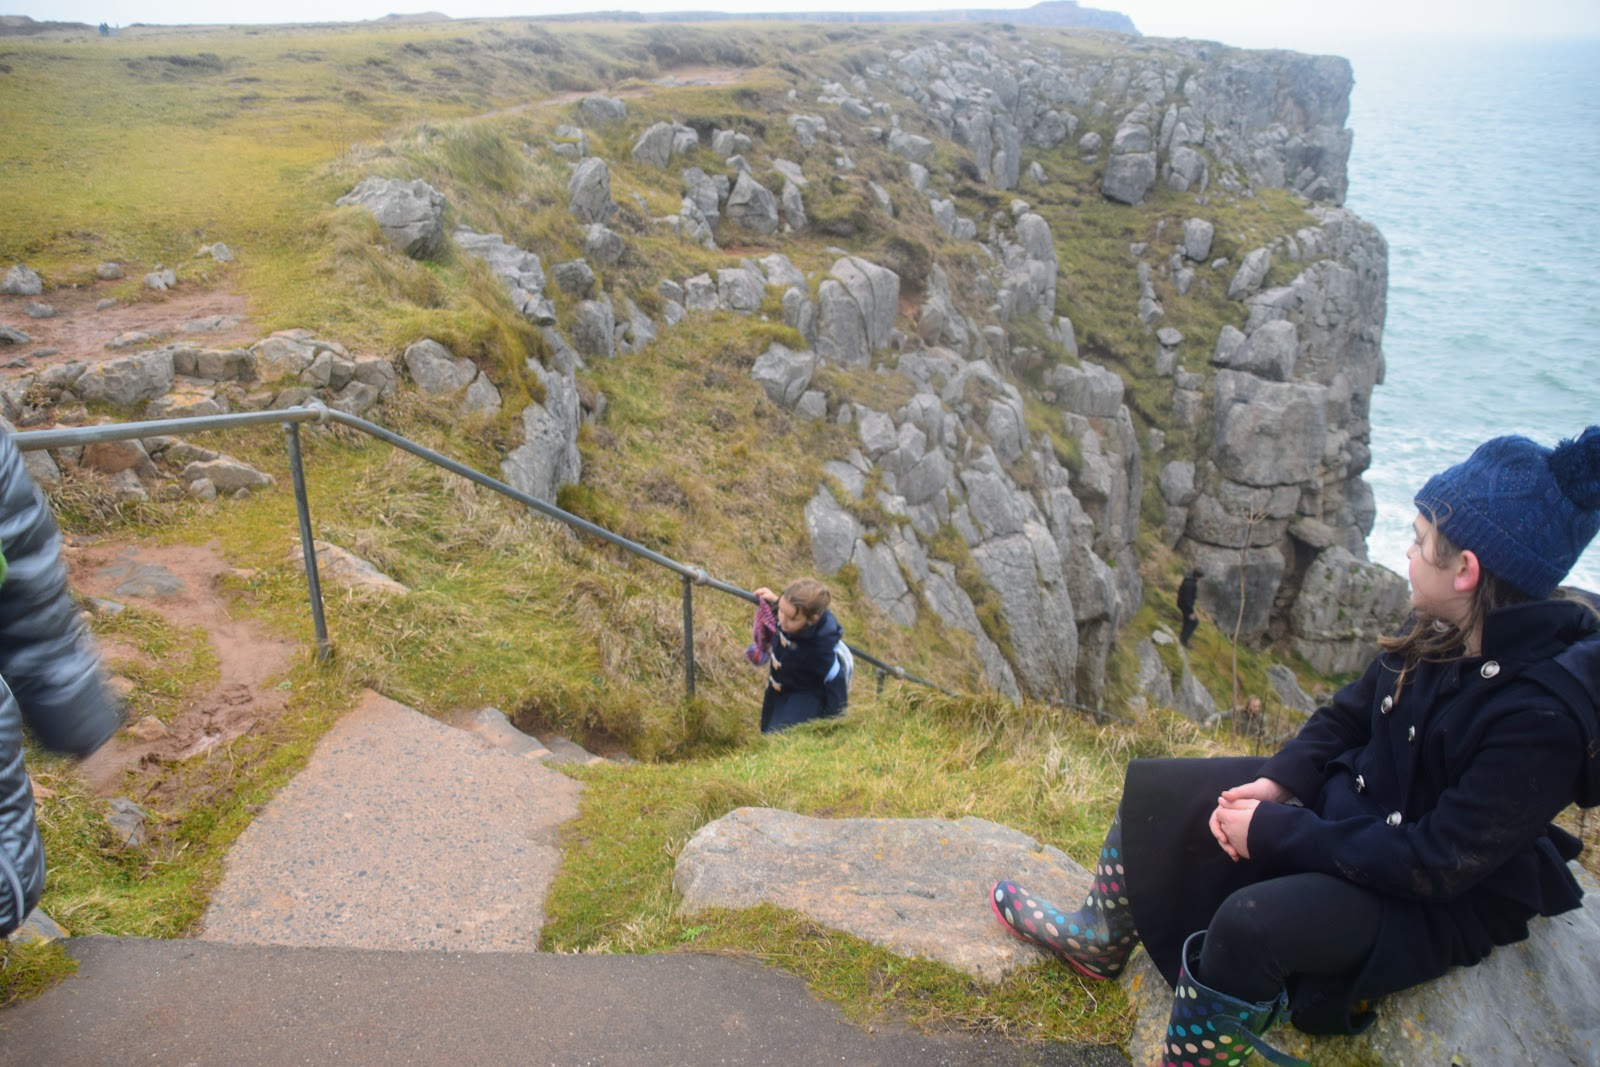 , Visiting The Little Chap, St Govan's Head, Pembrokeshire